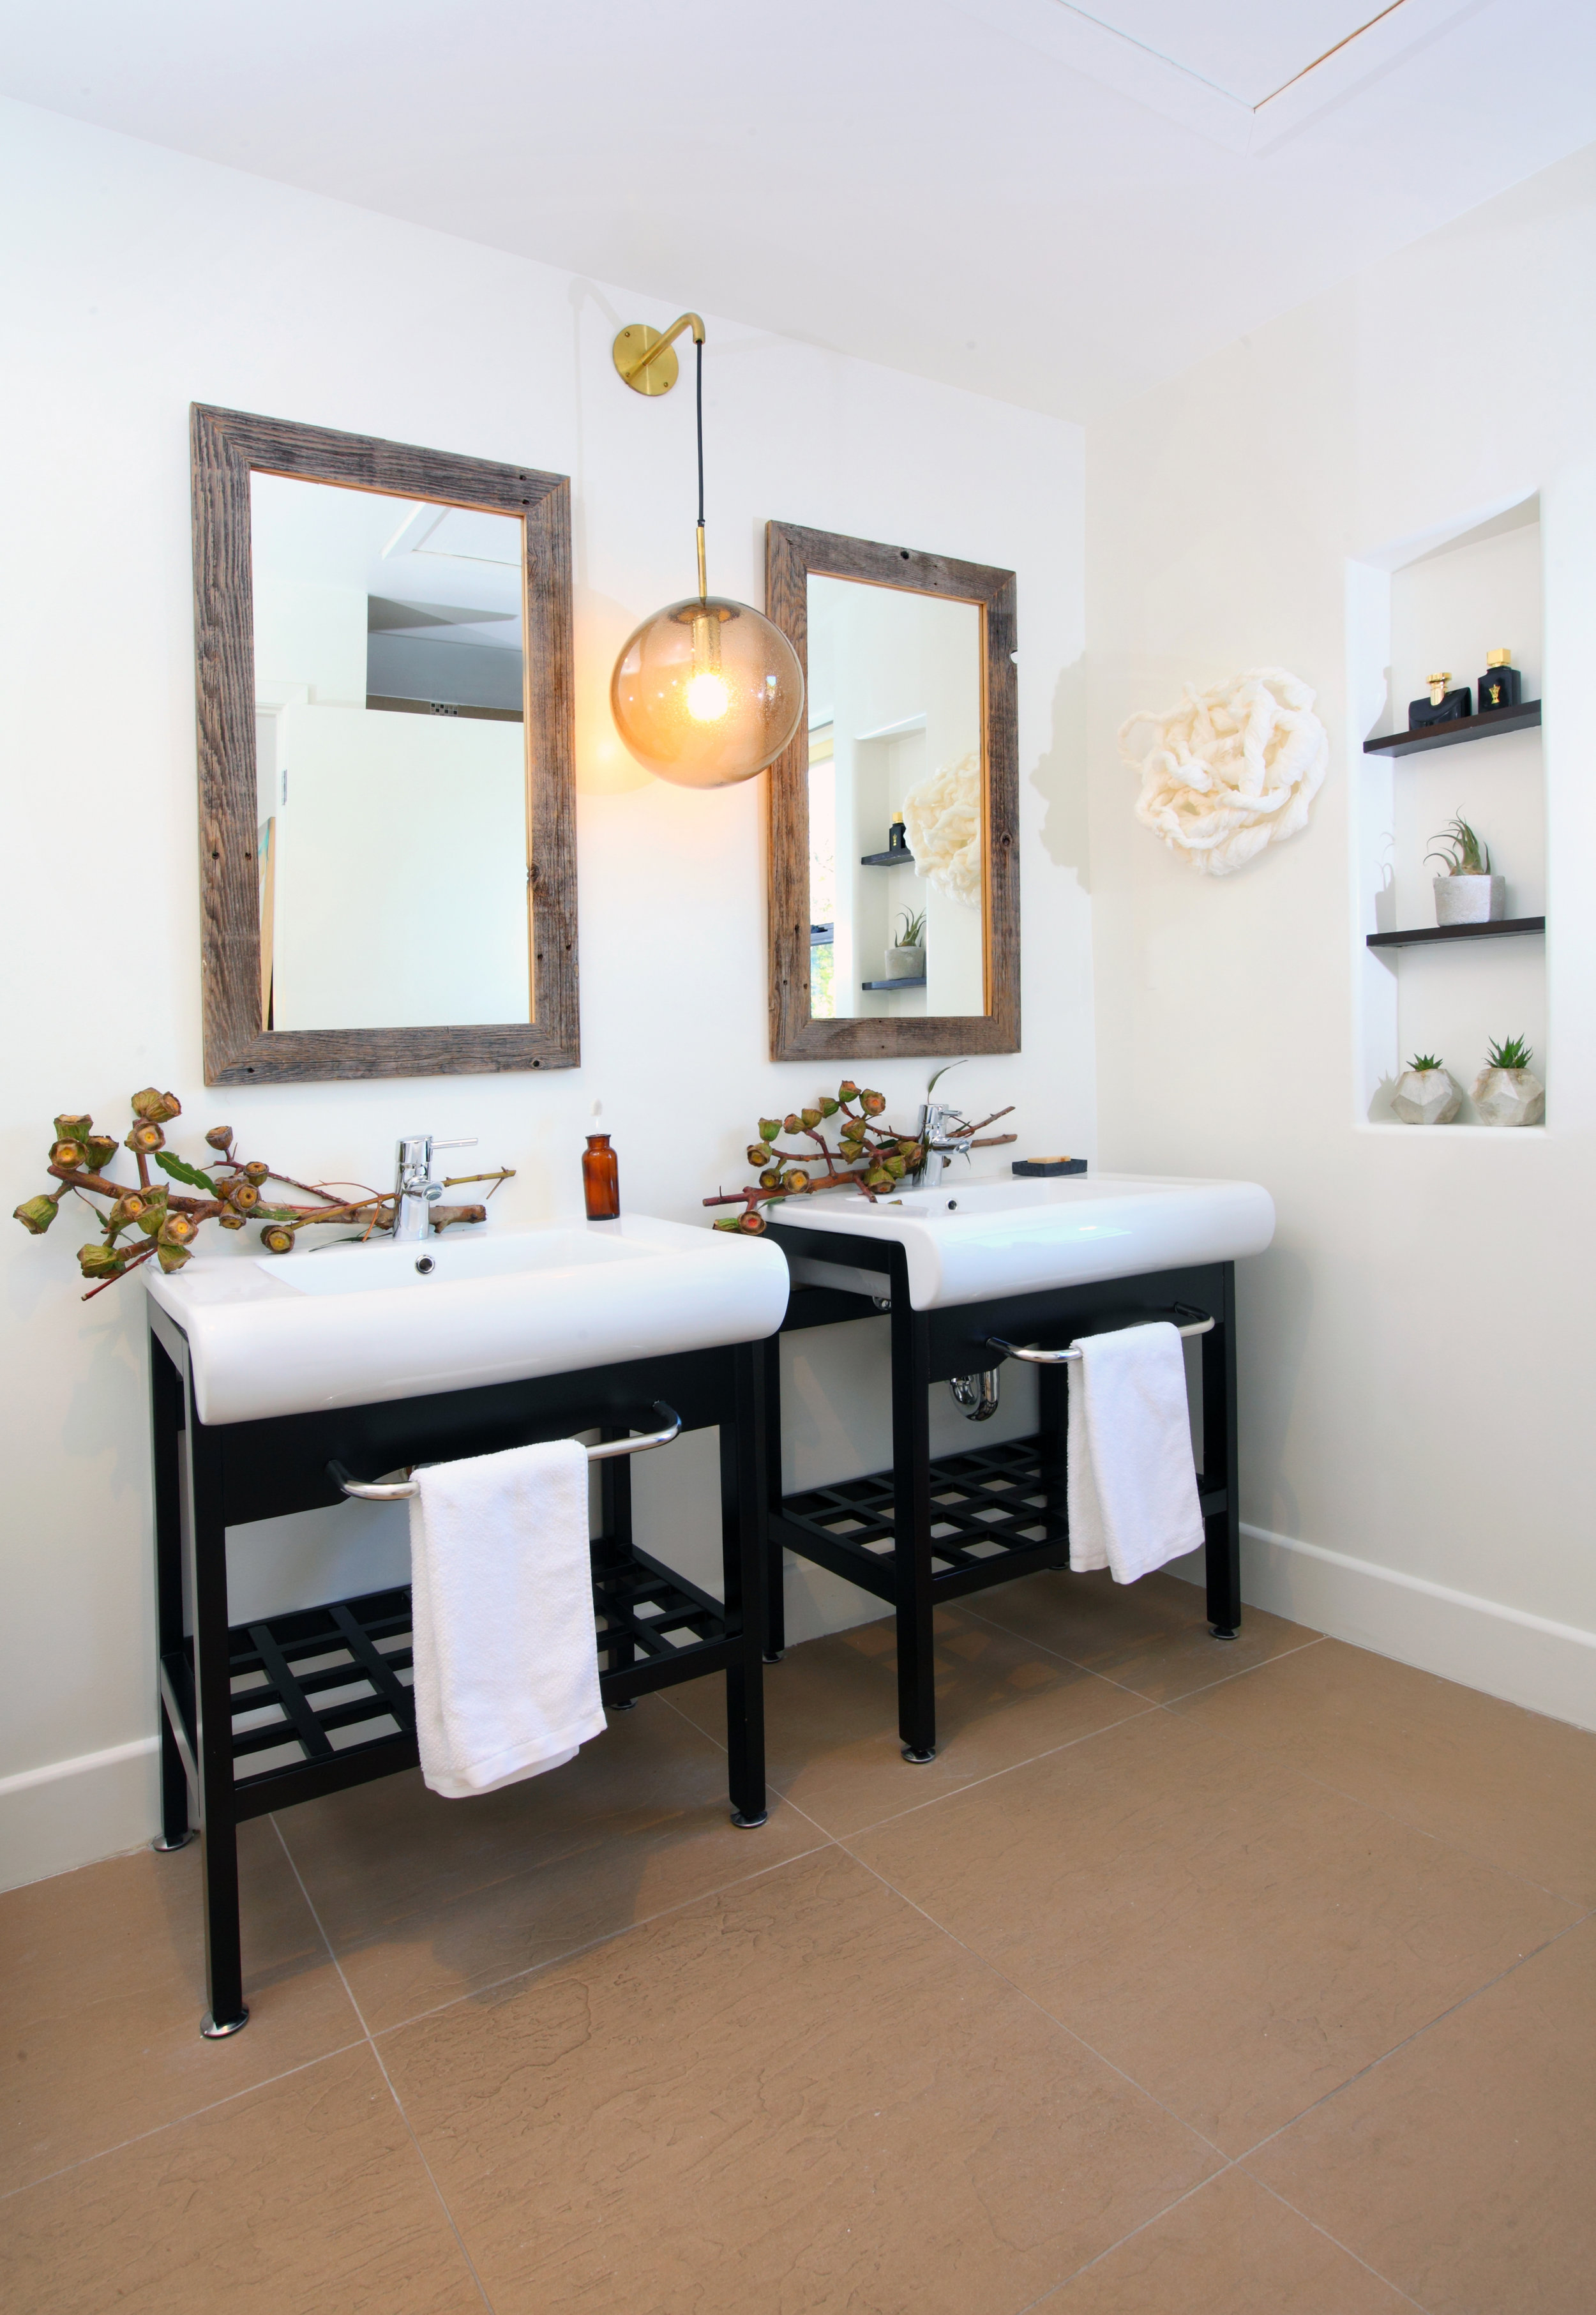 Sarah-barnard-design-modern-luxury-master-bathroom.jpg